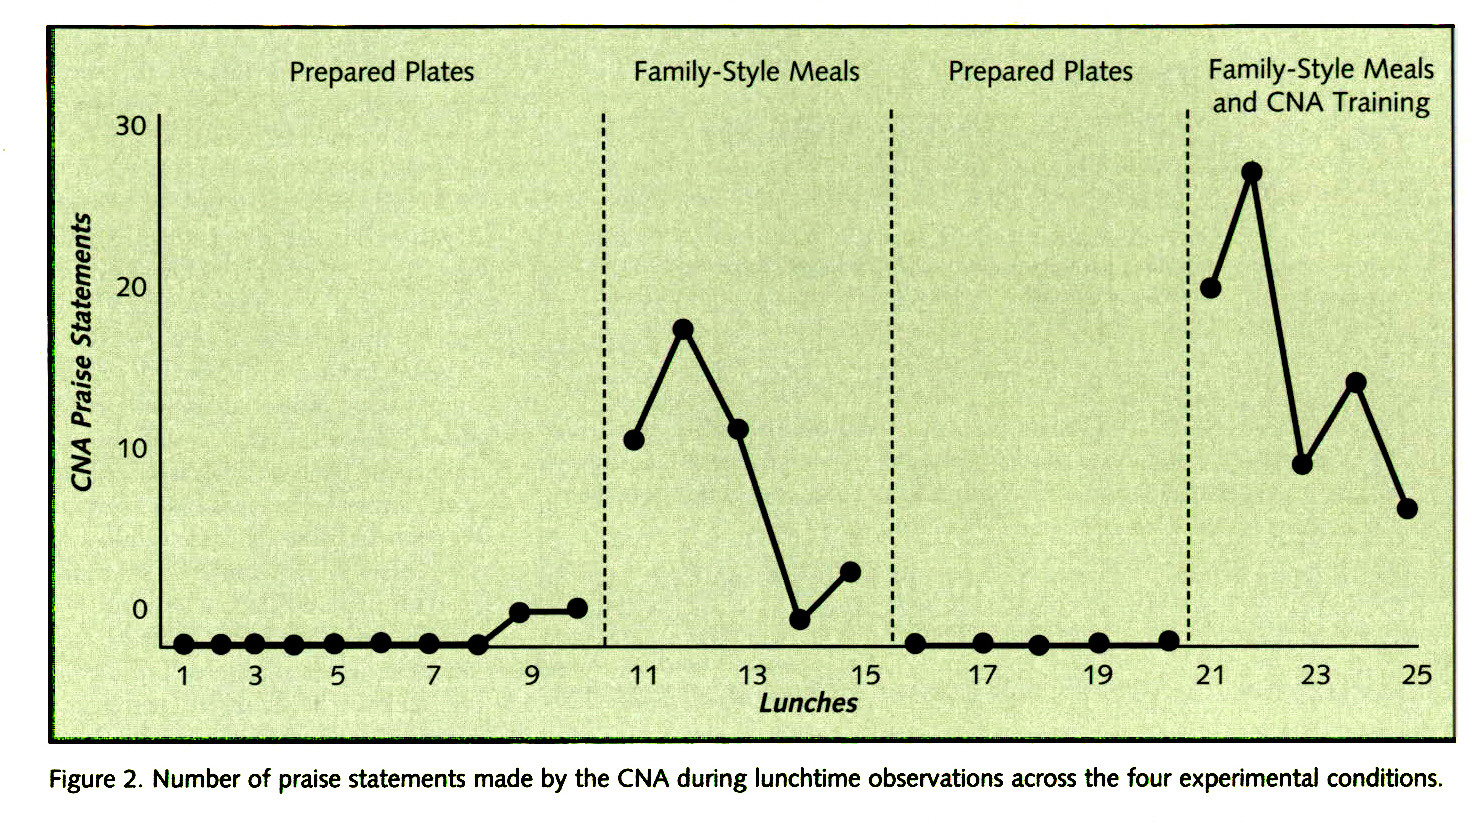 Figure 2. Number of praise statements made by the CNA during lunchtime observations across the four experimental conditions.